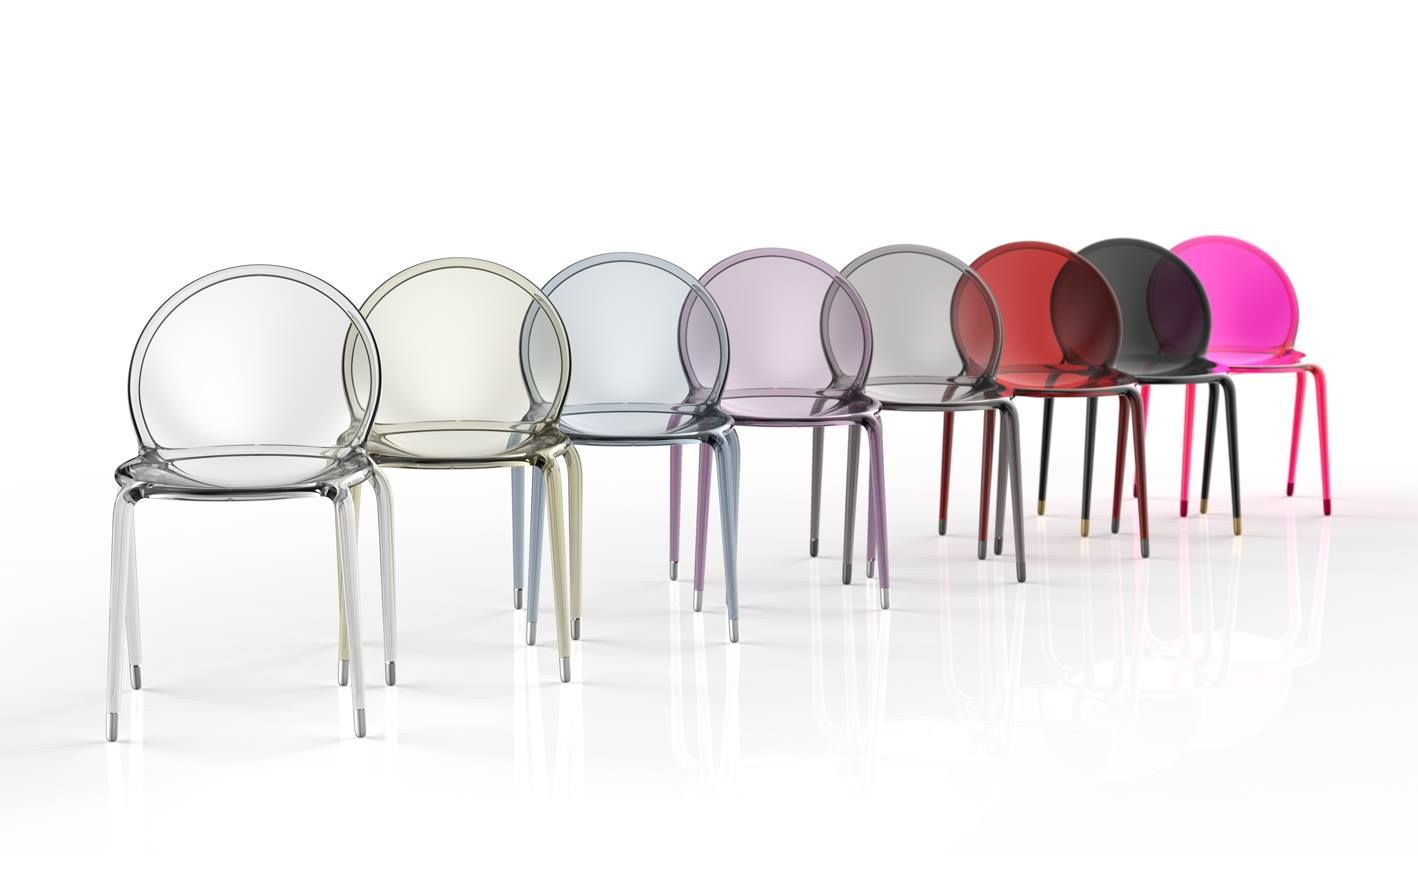 Tabourets Waterline Loop Chair Roche Bobois Google Search Interior Chair Chair